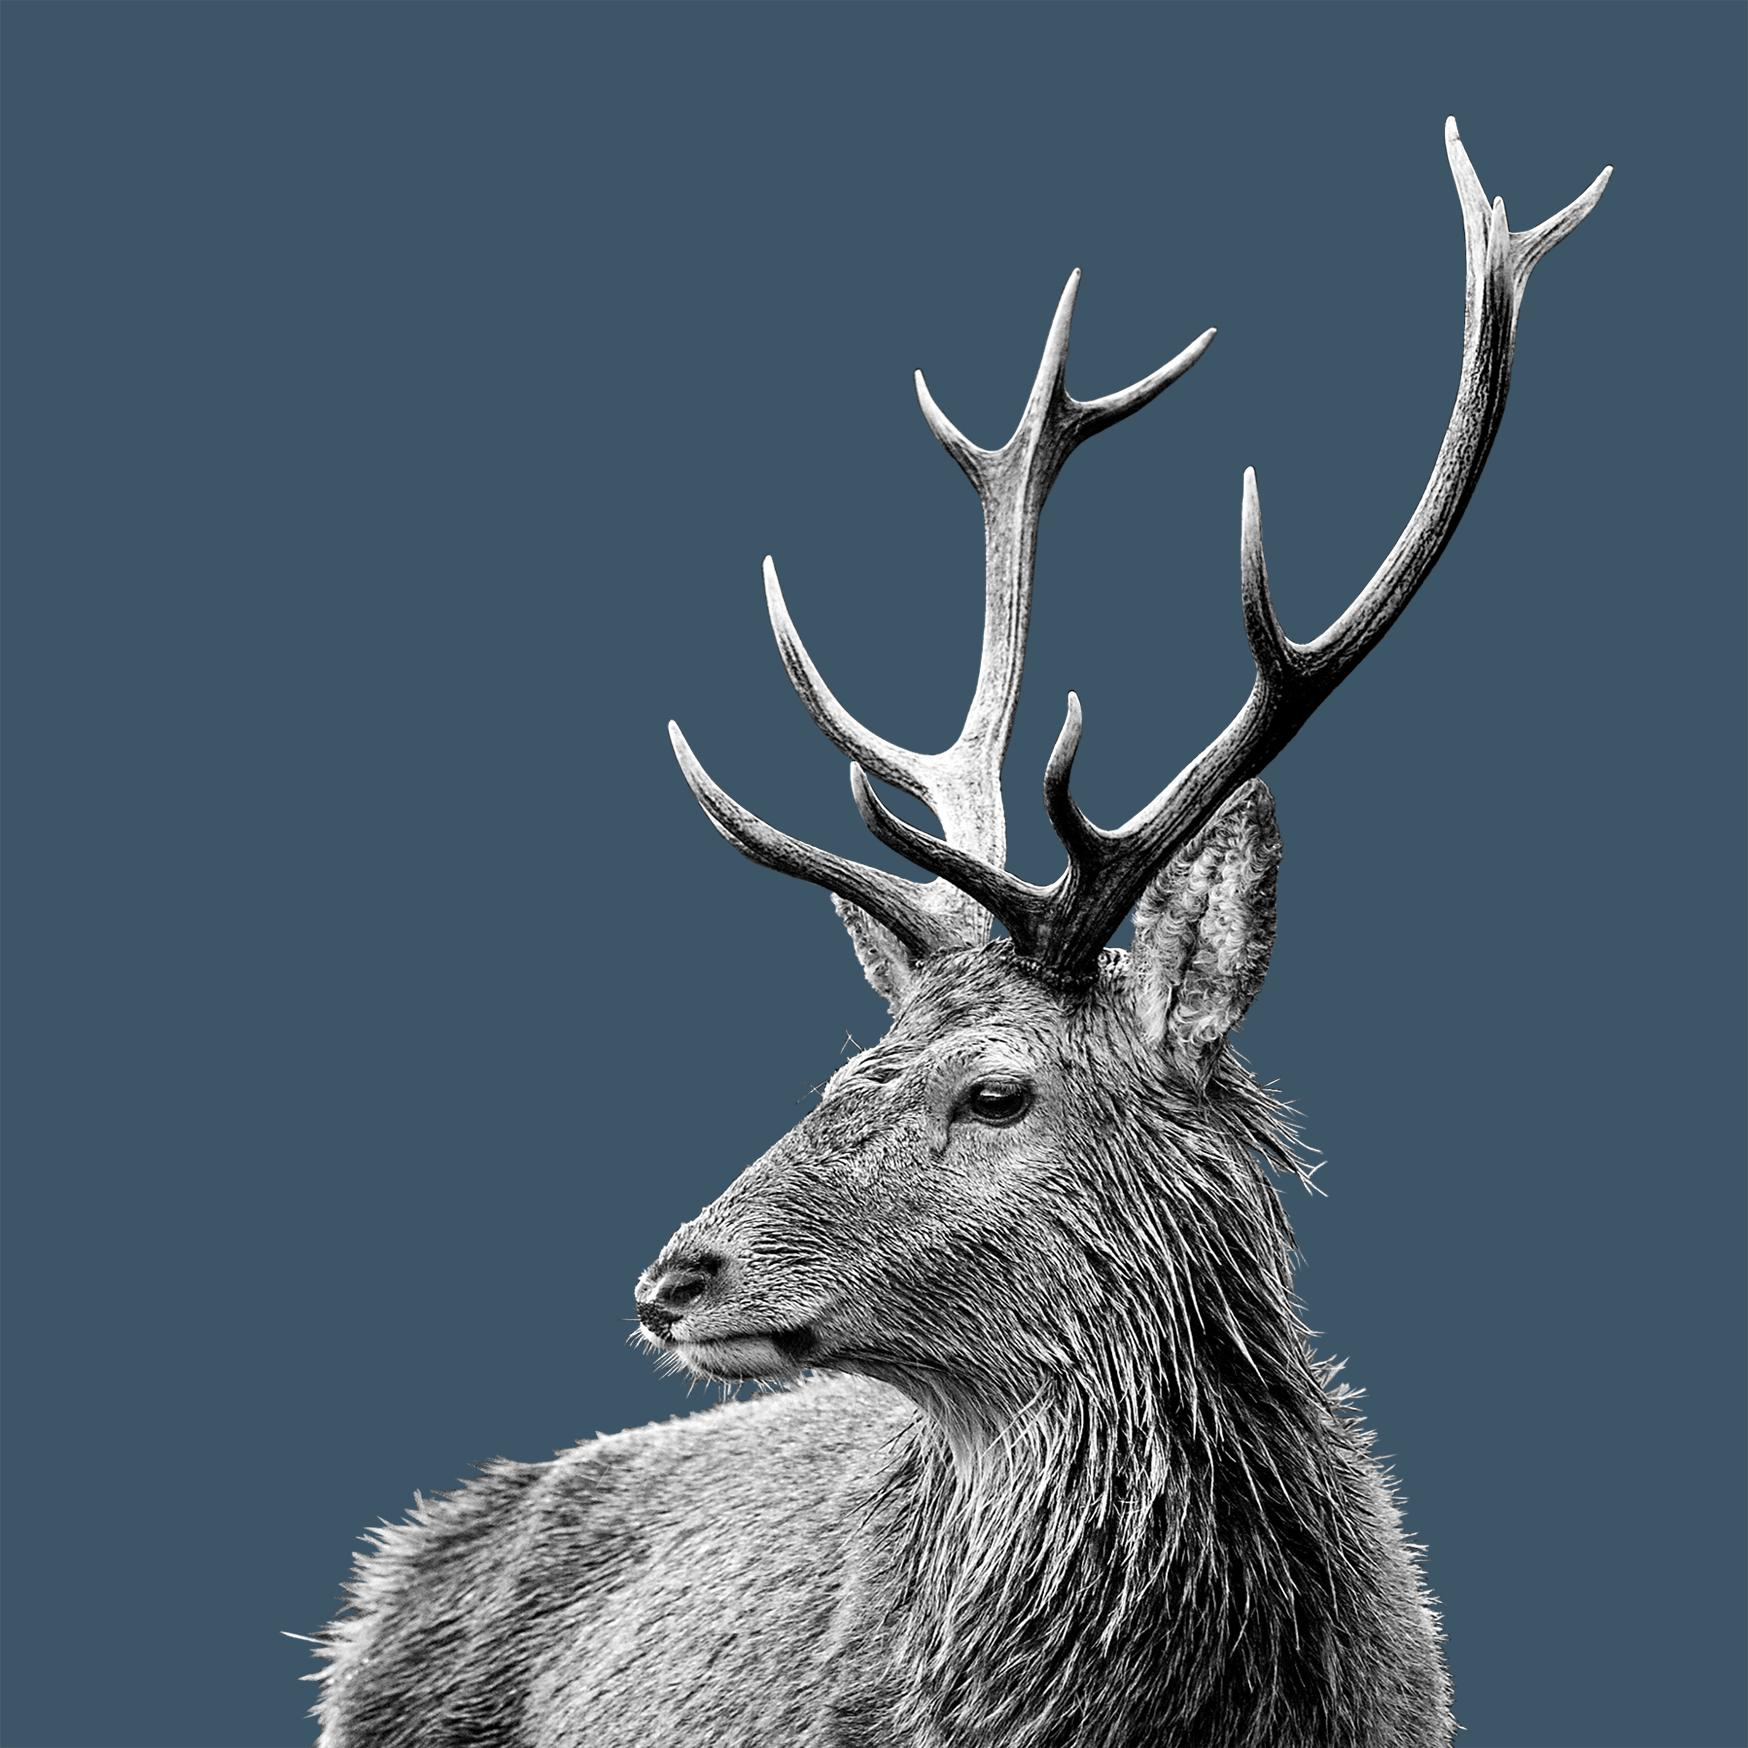 15 x 15 Card - Highland Stag on Indigo